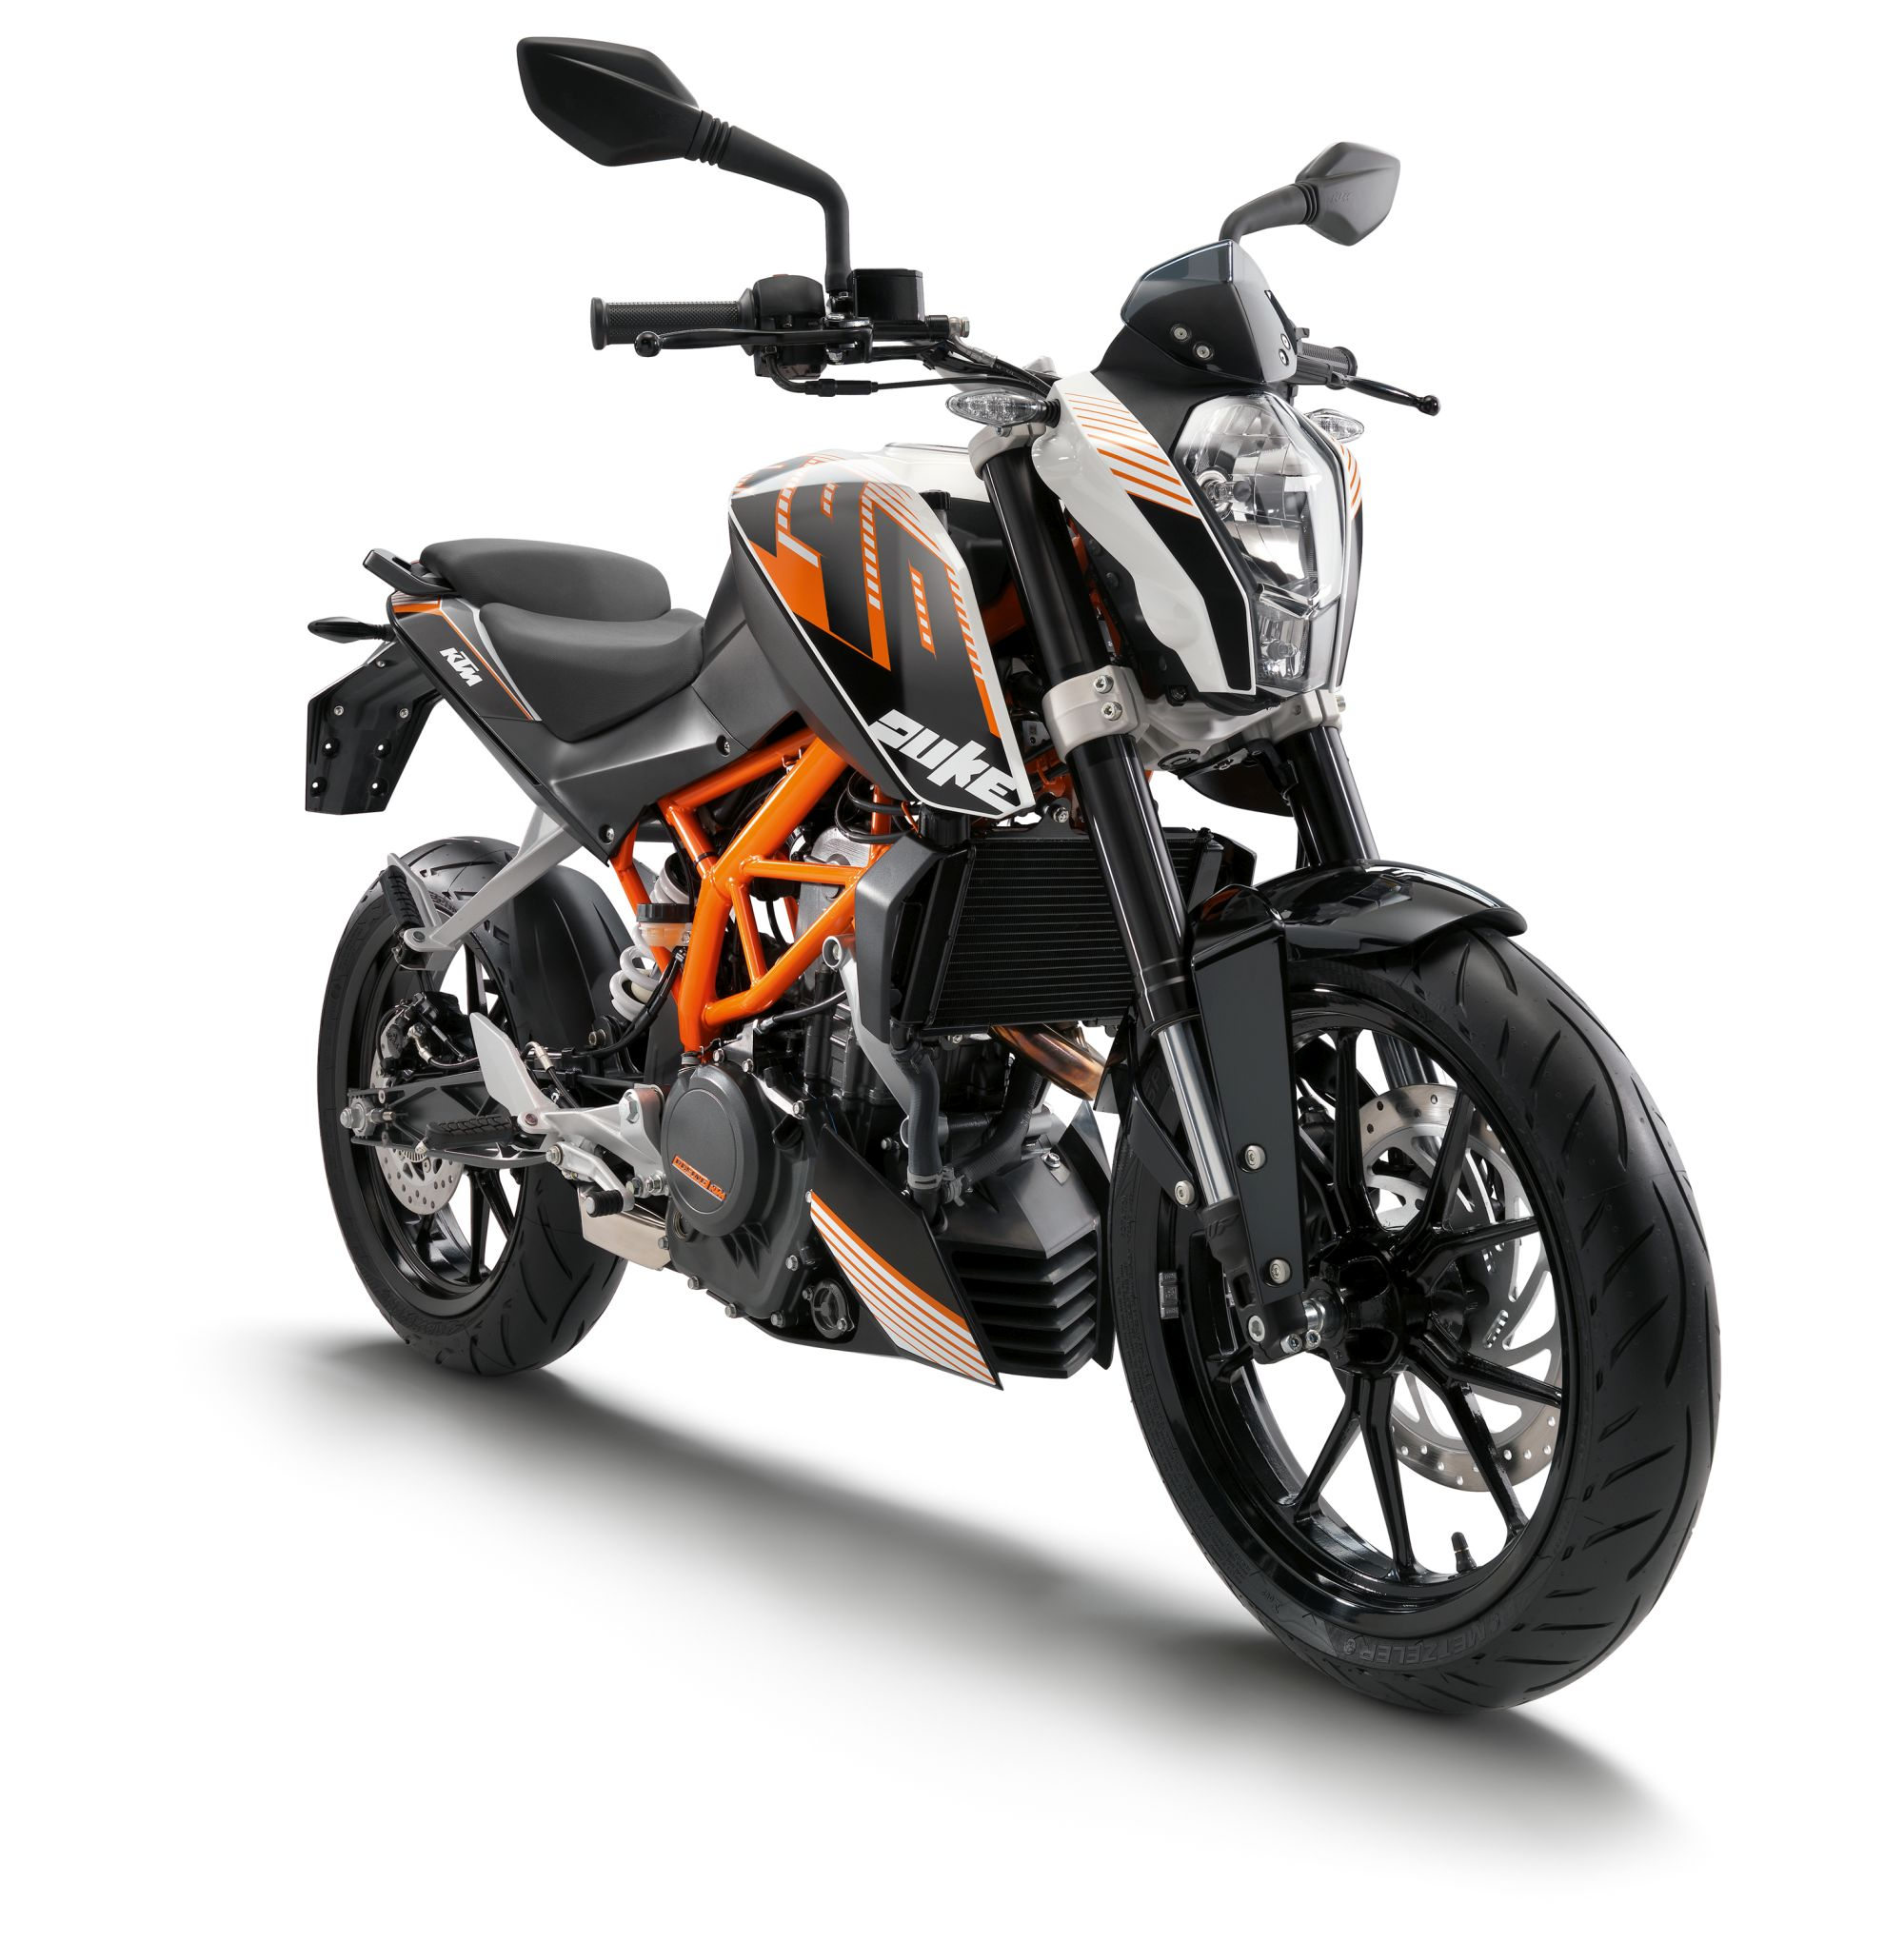 ktm 390 duke bilder und technische daten. Black Bedroom Furniture Sets. Home Design Ideas